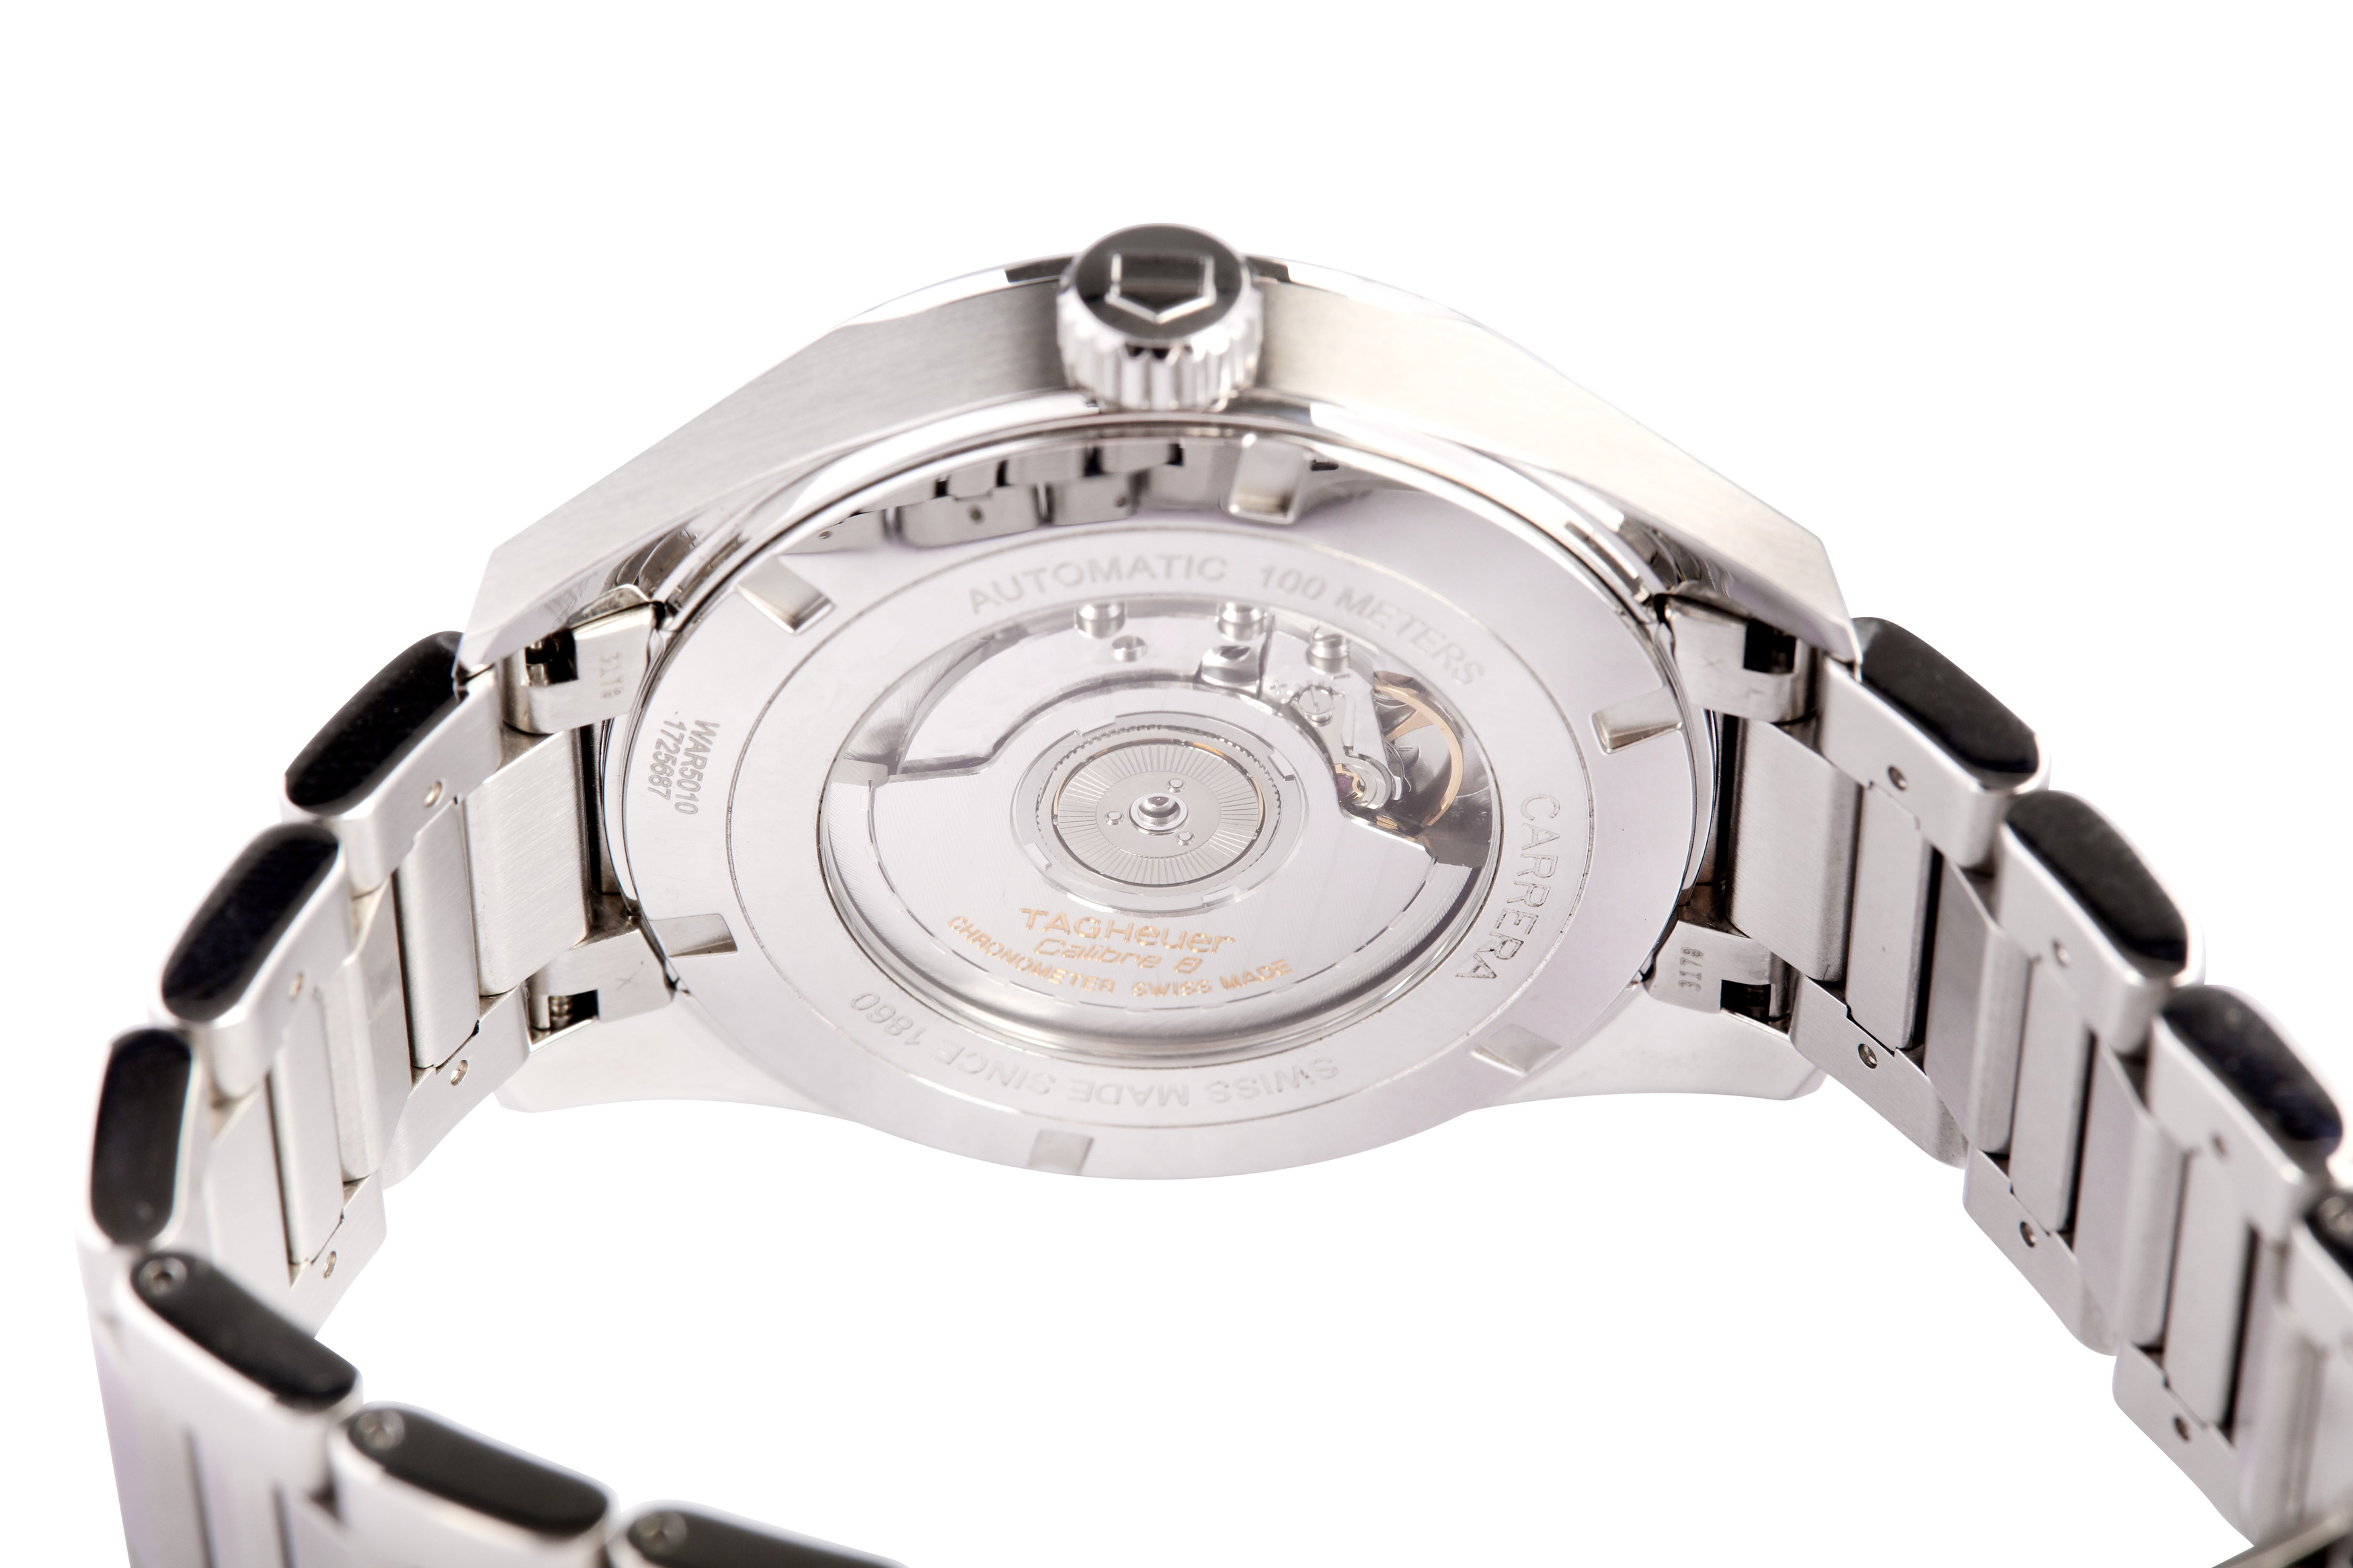 TAG HEUER - Image 6 of 7